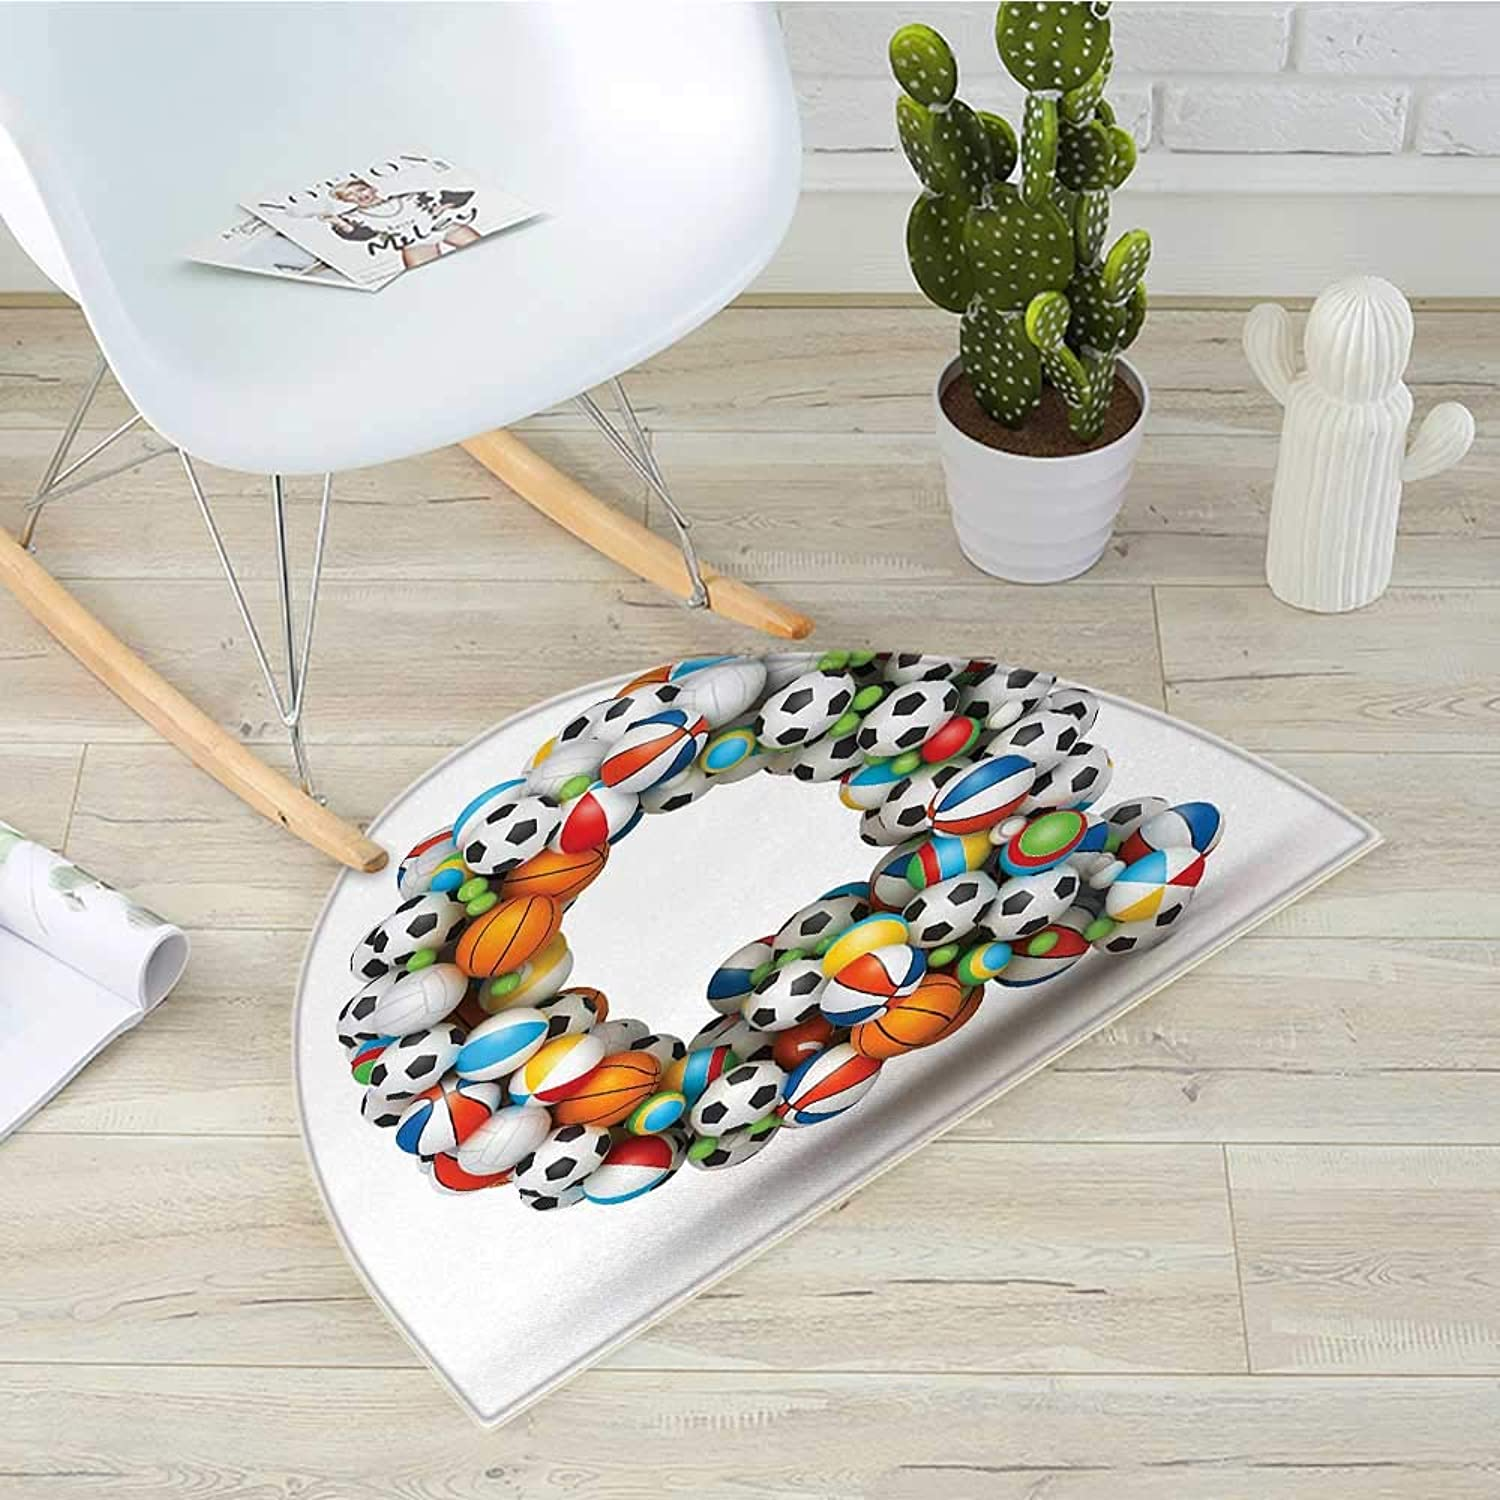 Letter Q Semicircle Doormat Typographic Letter Font Design with Various Gaming Balls Athletic Kids Teamplay Halfmoon doormats H 35.4  xD 53.1  Multicolor